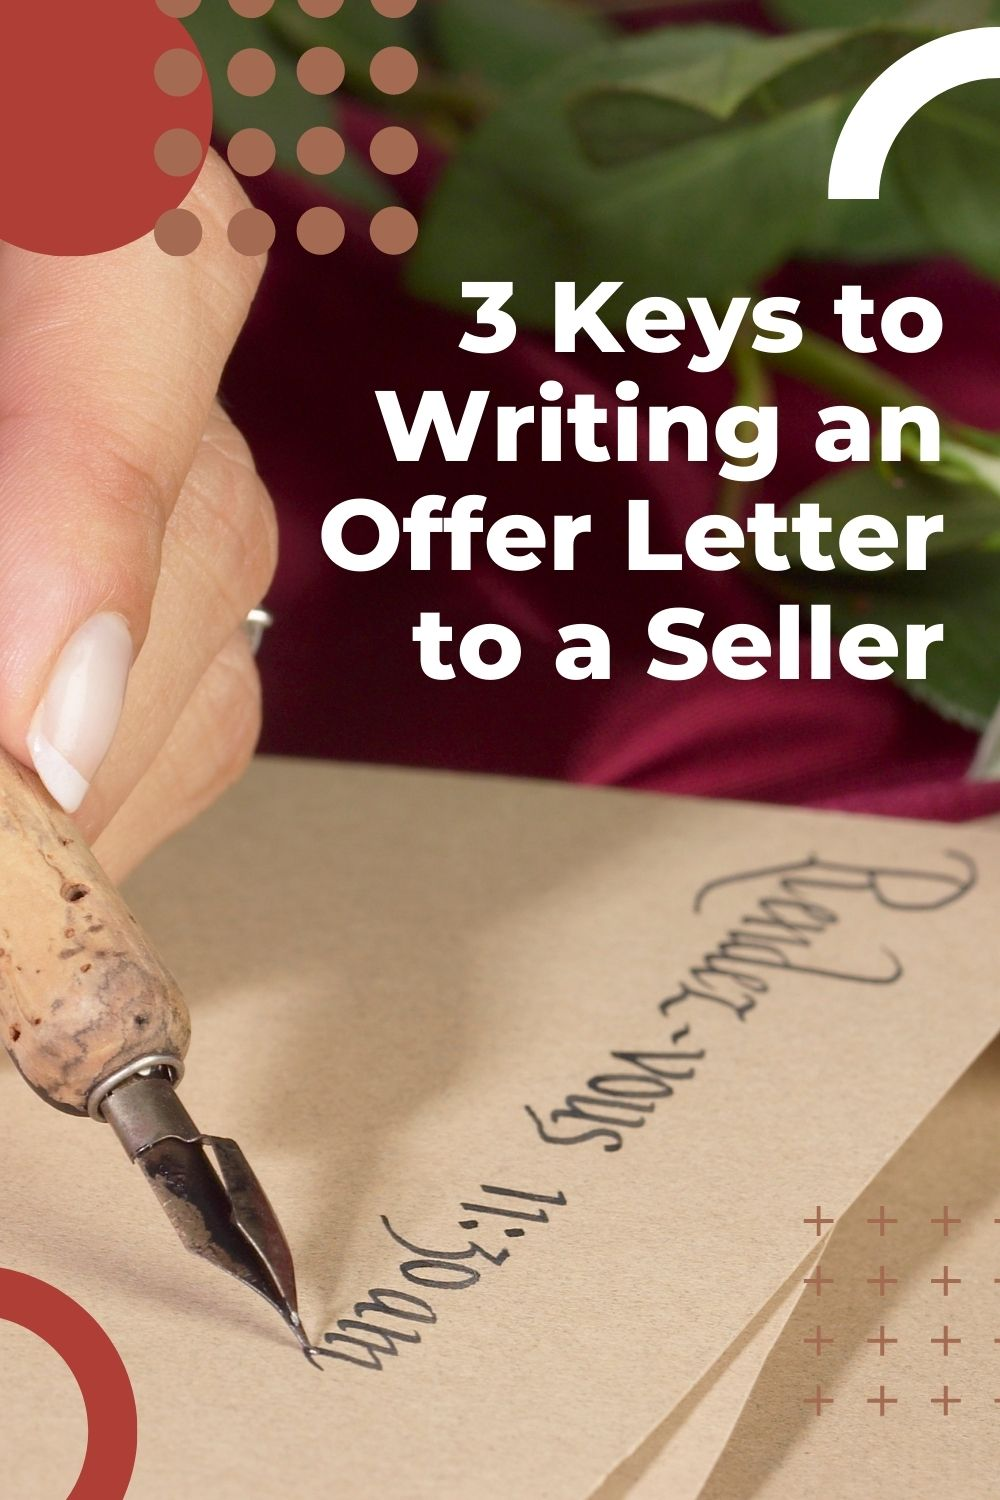 3 Keys to Writing an Offer Letter to a Seller